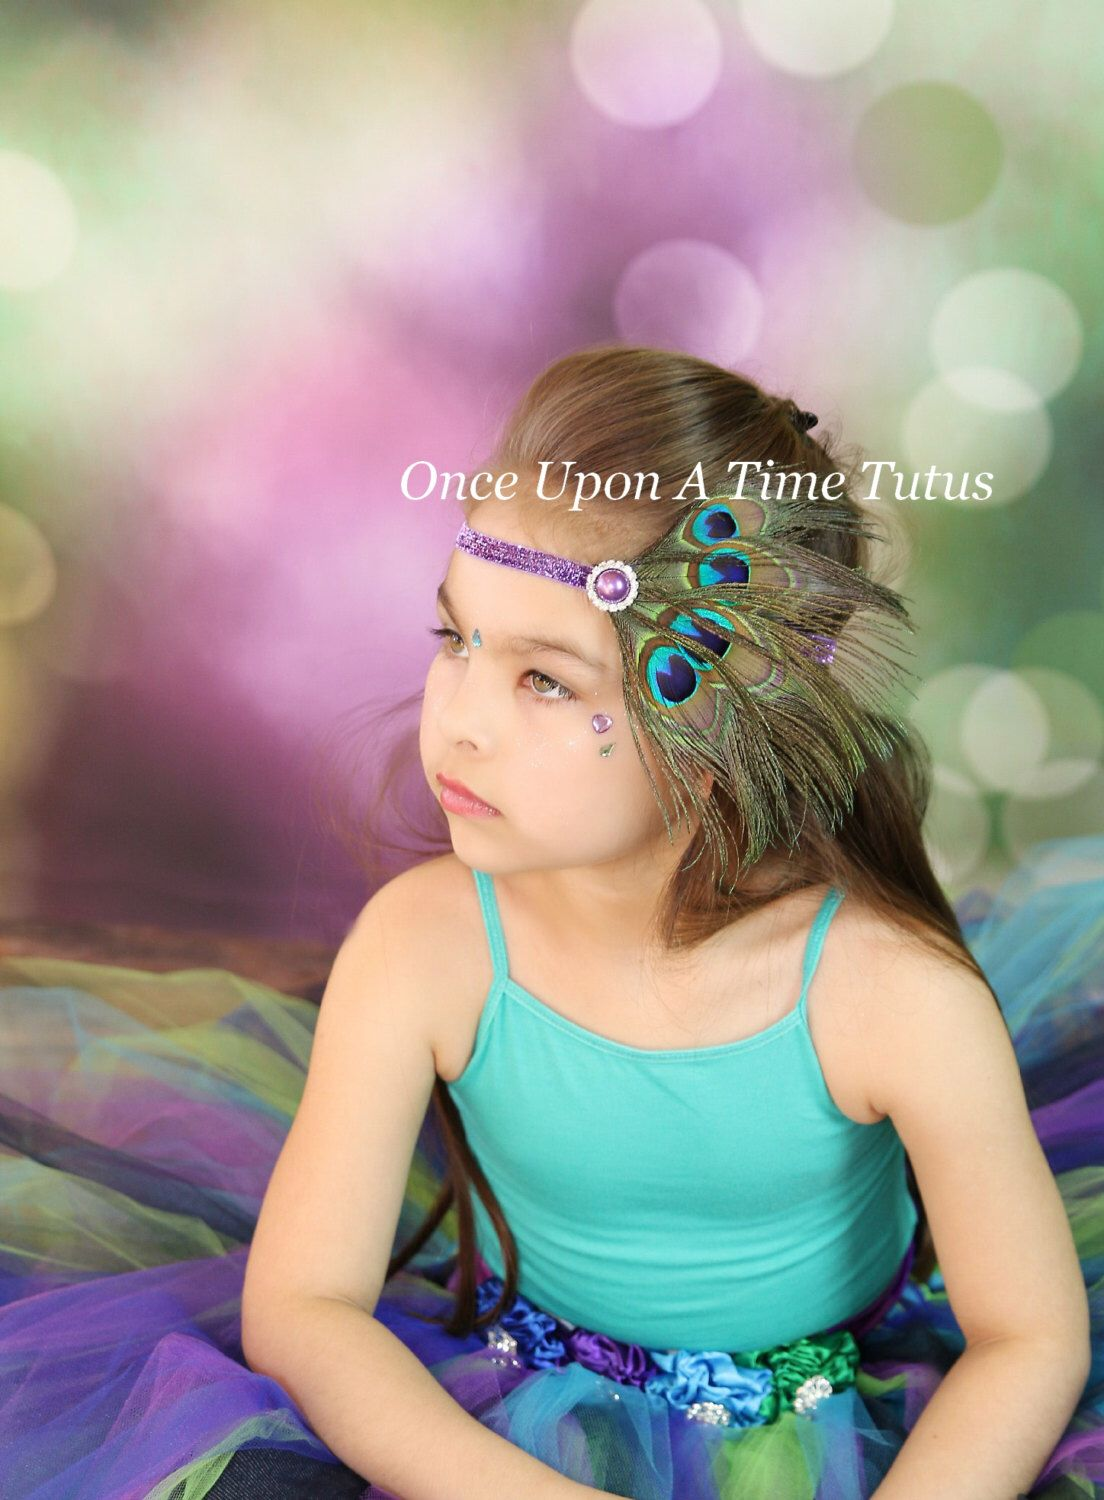 Couture Peacock Feather Headband - Costume, Wedding, Birthday, Photo Prop Pearl Glitter Hairbow - Newborn Infant Baby Child Girl Hair Bow by OnceUponATimeTuTus on Etsy https://www.etsy.com/listing/225266575/couture-peacock-feather-headband-costume